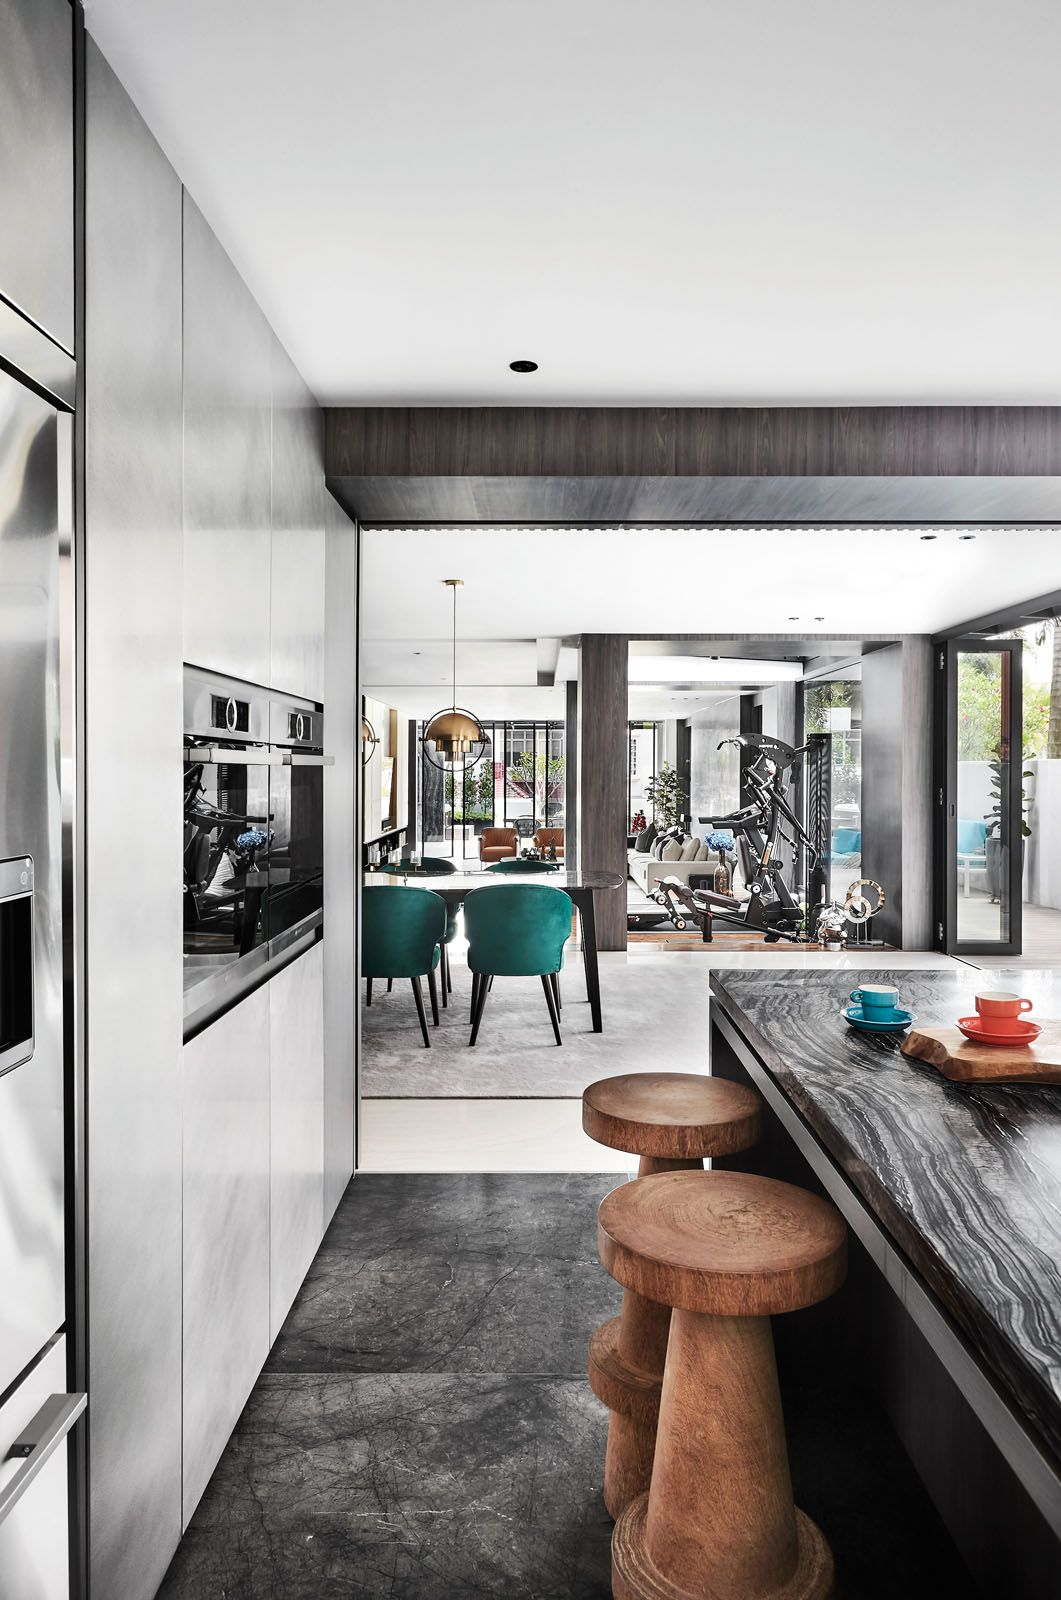 Home Tour: A Super-Chic Monochromatic House Made For Entertaining